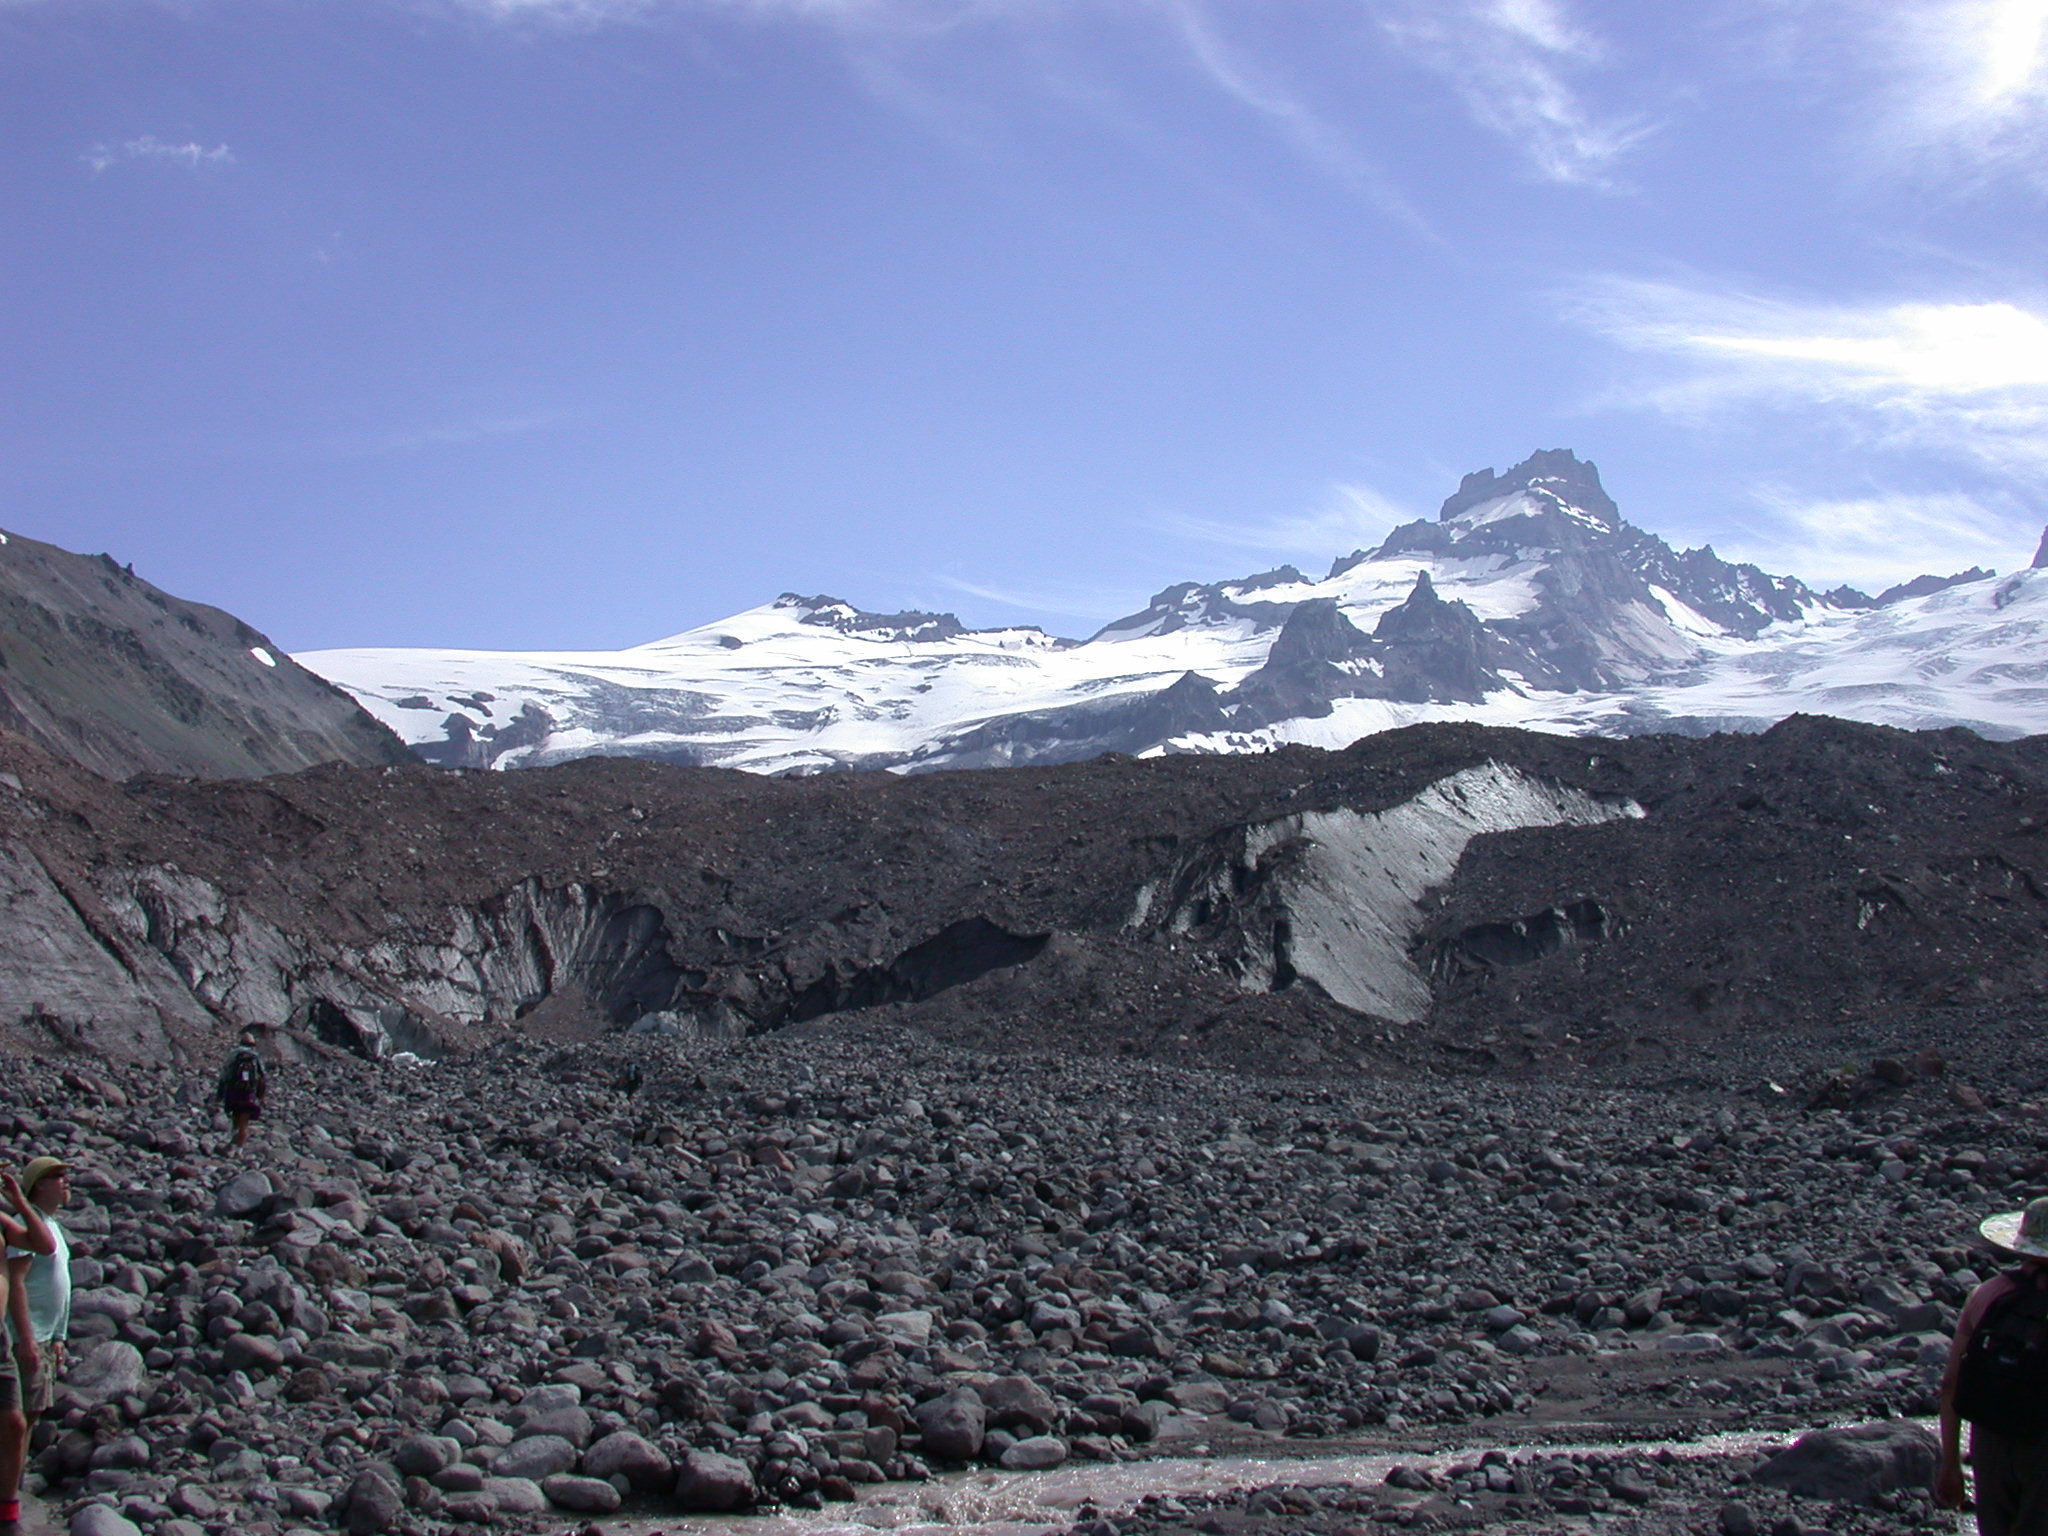 Base of Glacier on Mount Rainier